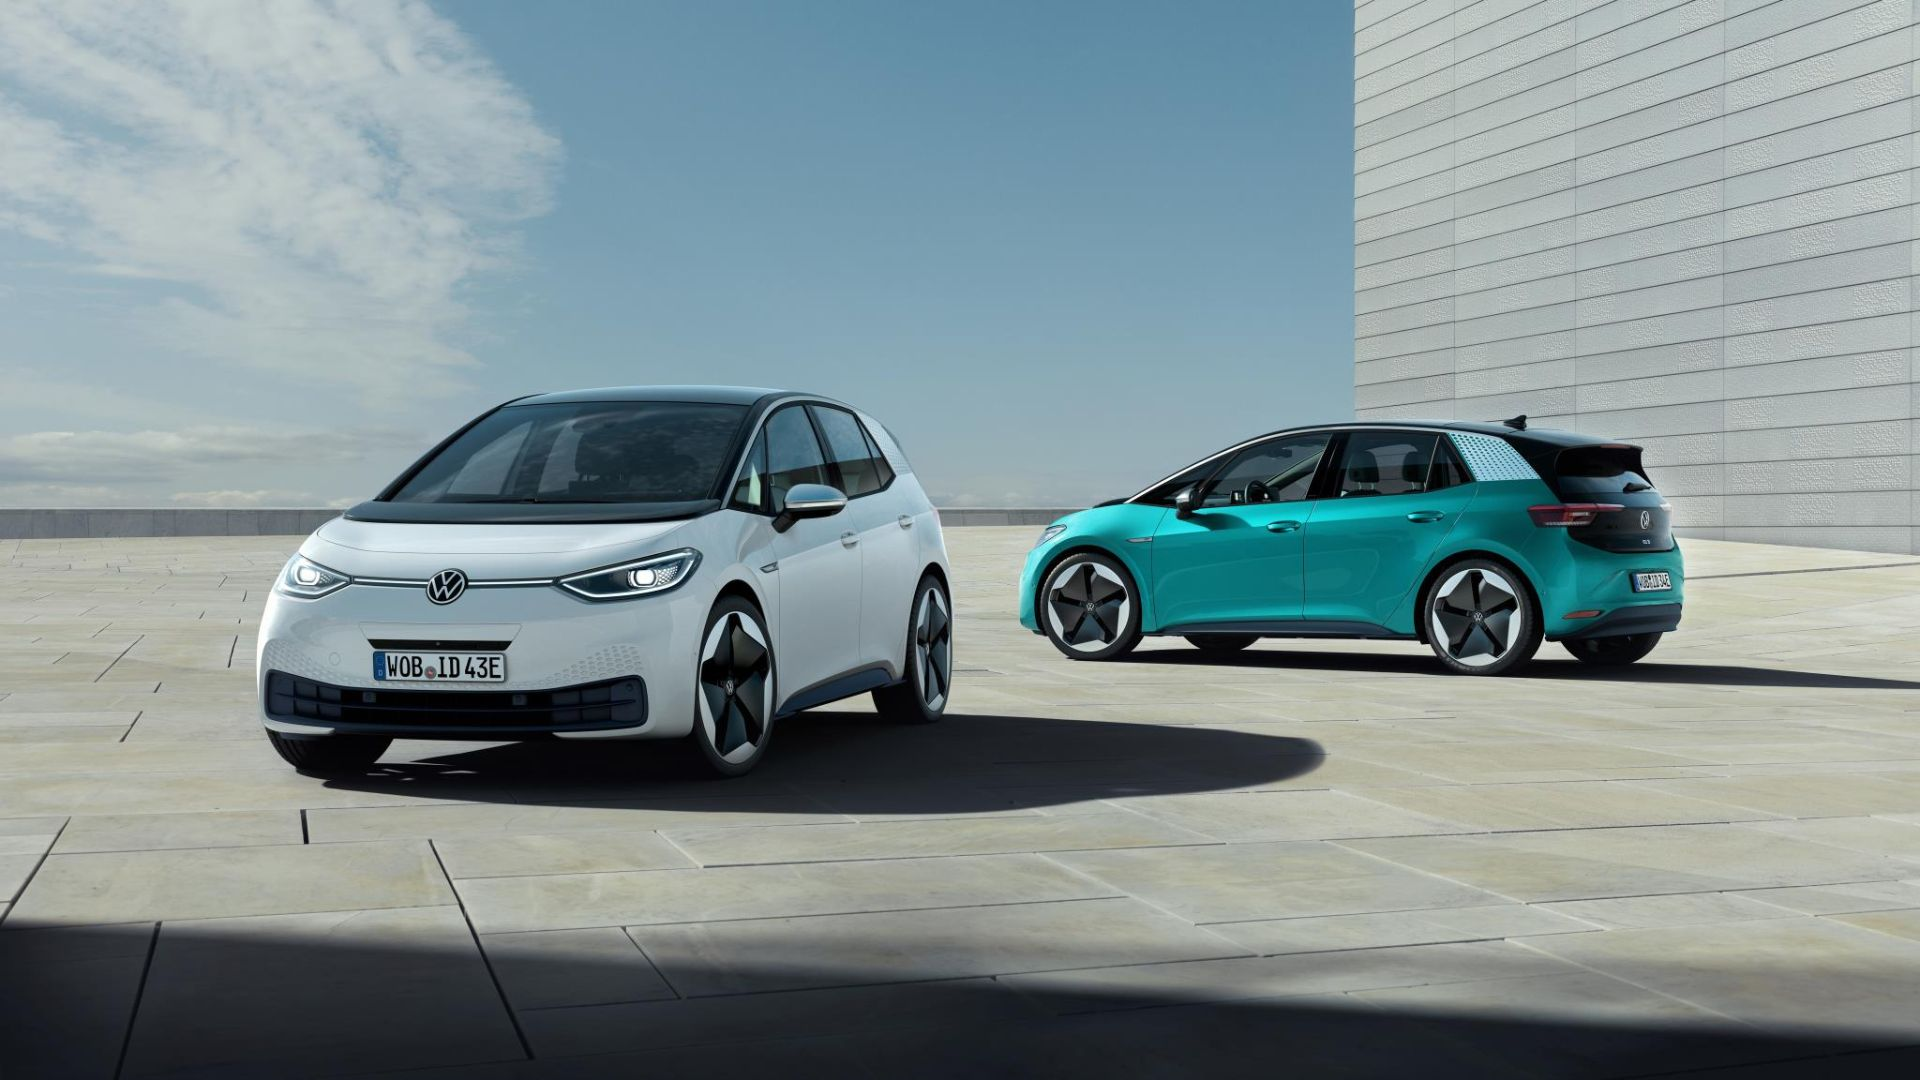 Volkswagen electric car production